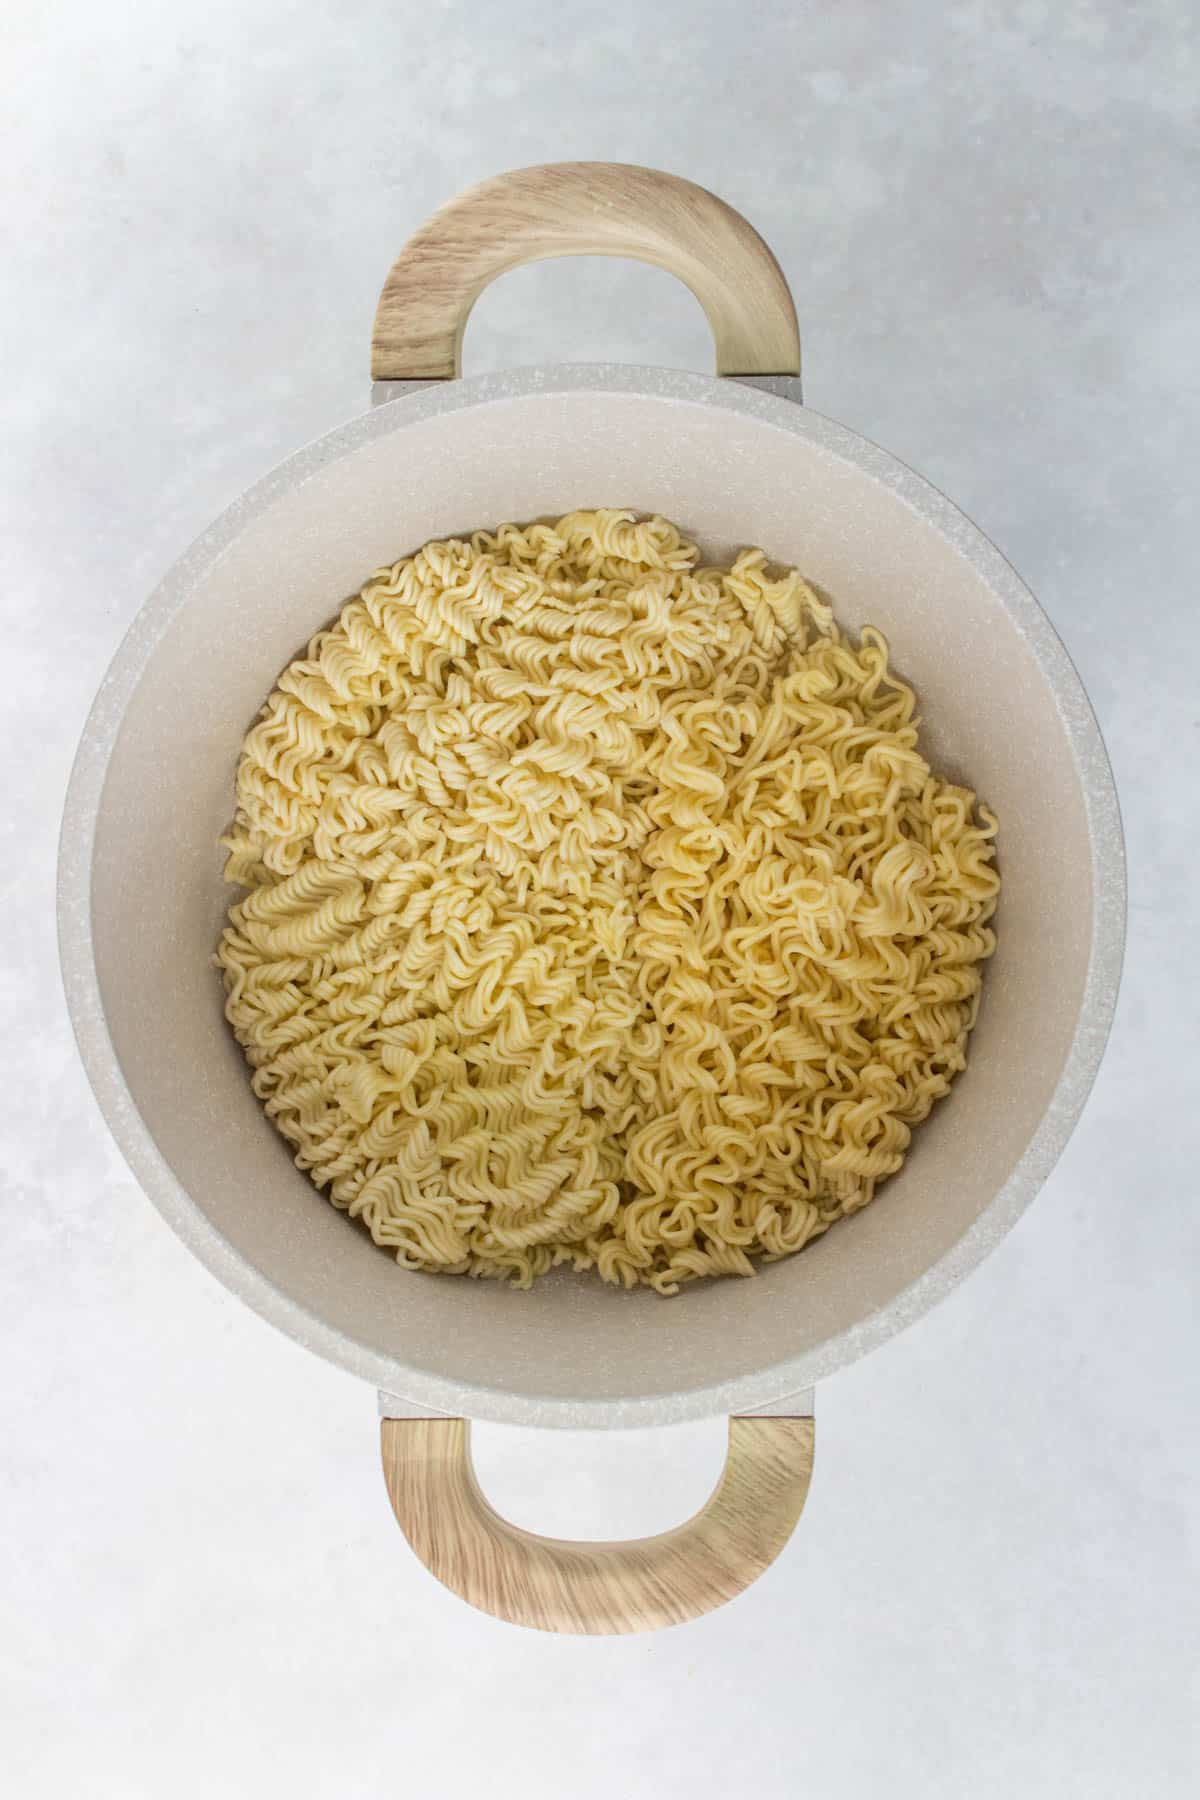 A pot of cooked noodles.